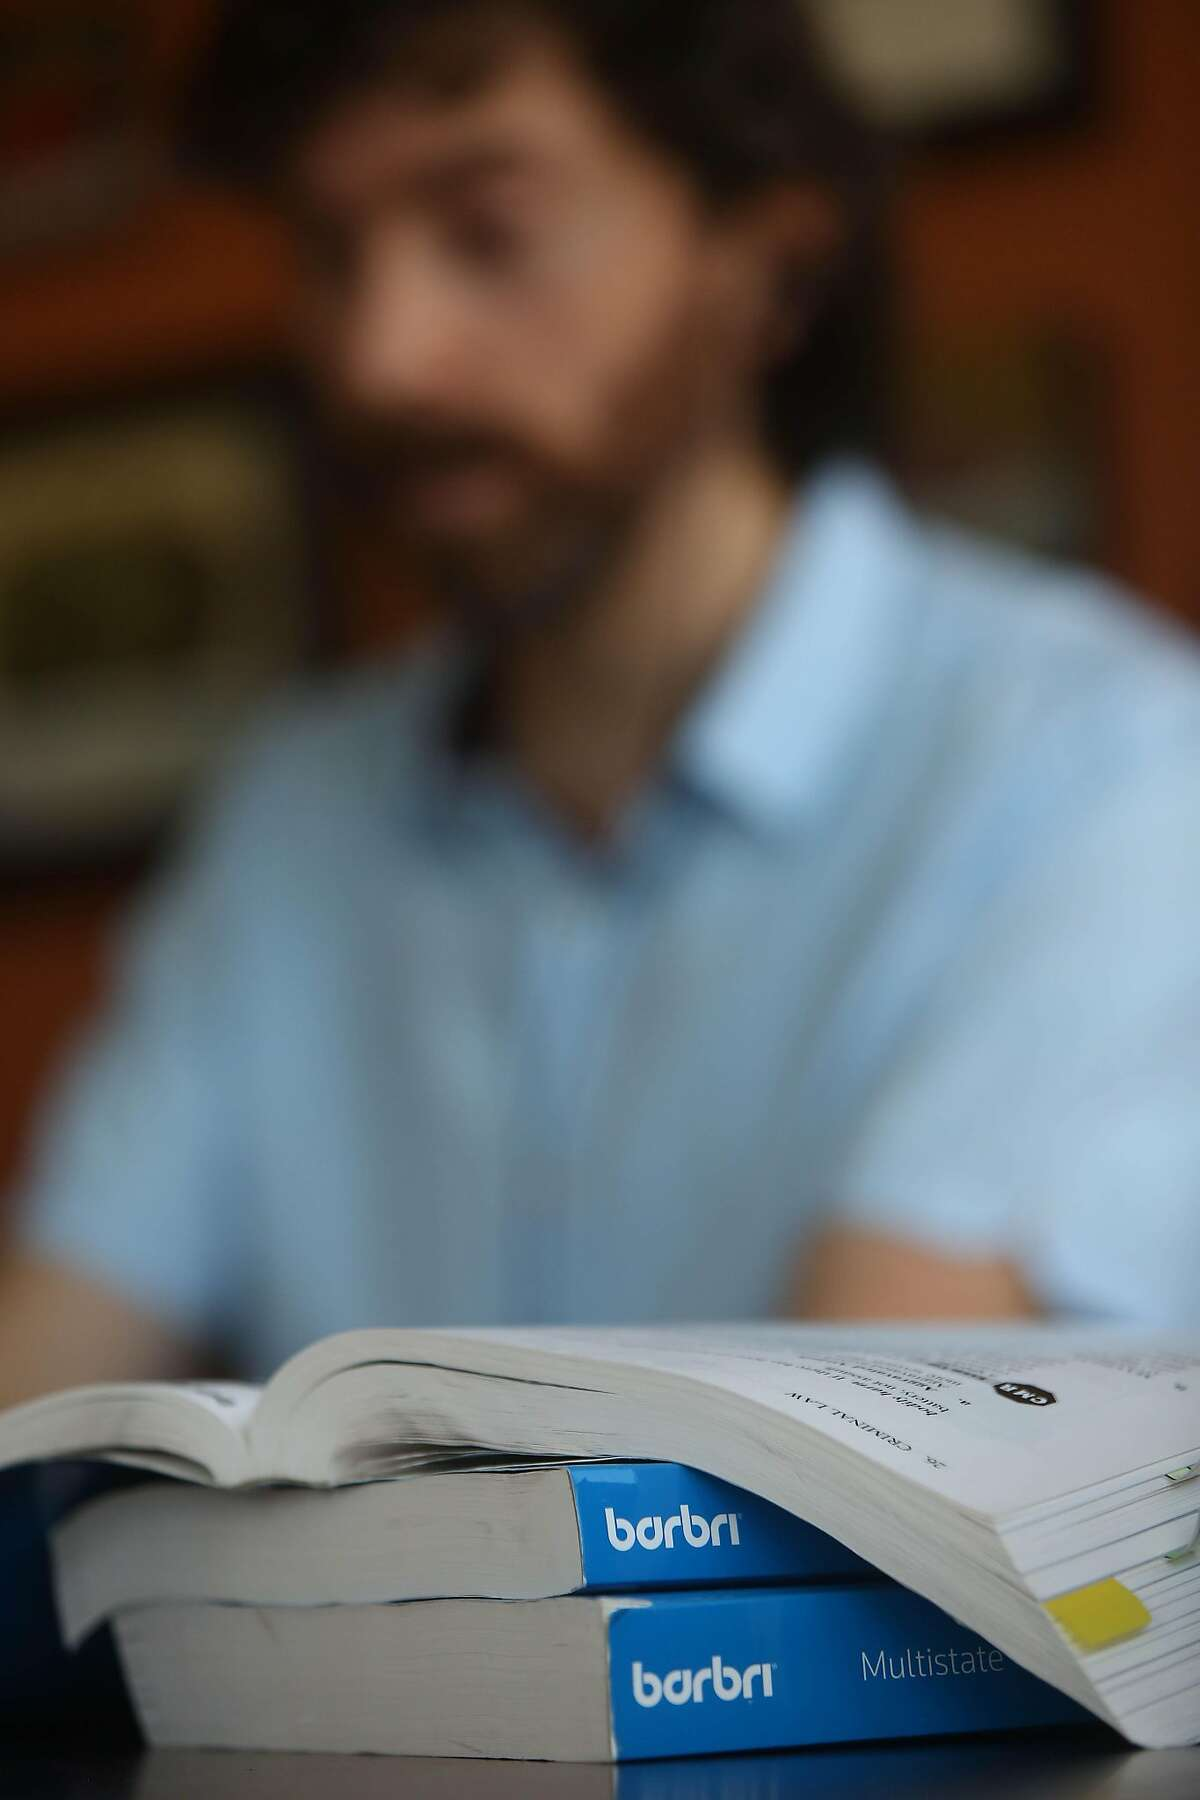 Study materials are seen next to Daniel Schweitzer, state bar tutor, as he talks to a client during a tutoring session from his home on Wednesday, September 16, 2020 in San Francisco, Calif.